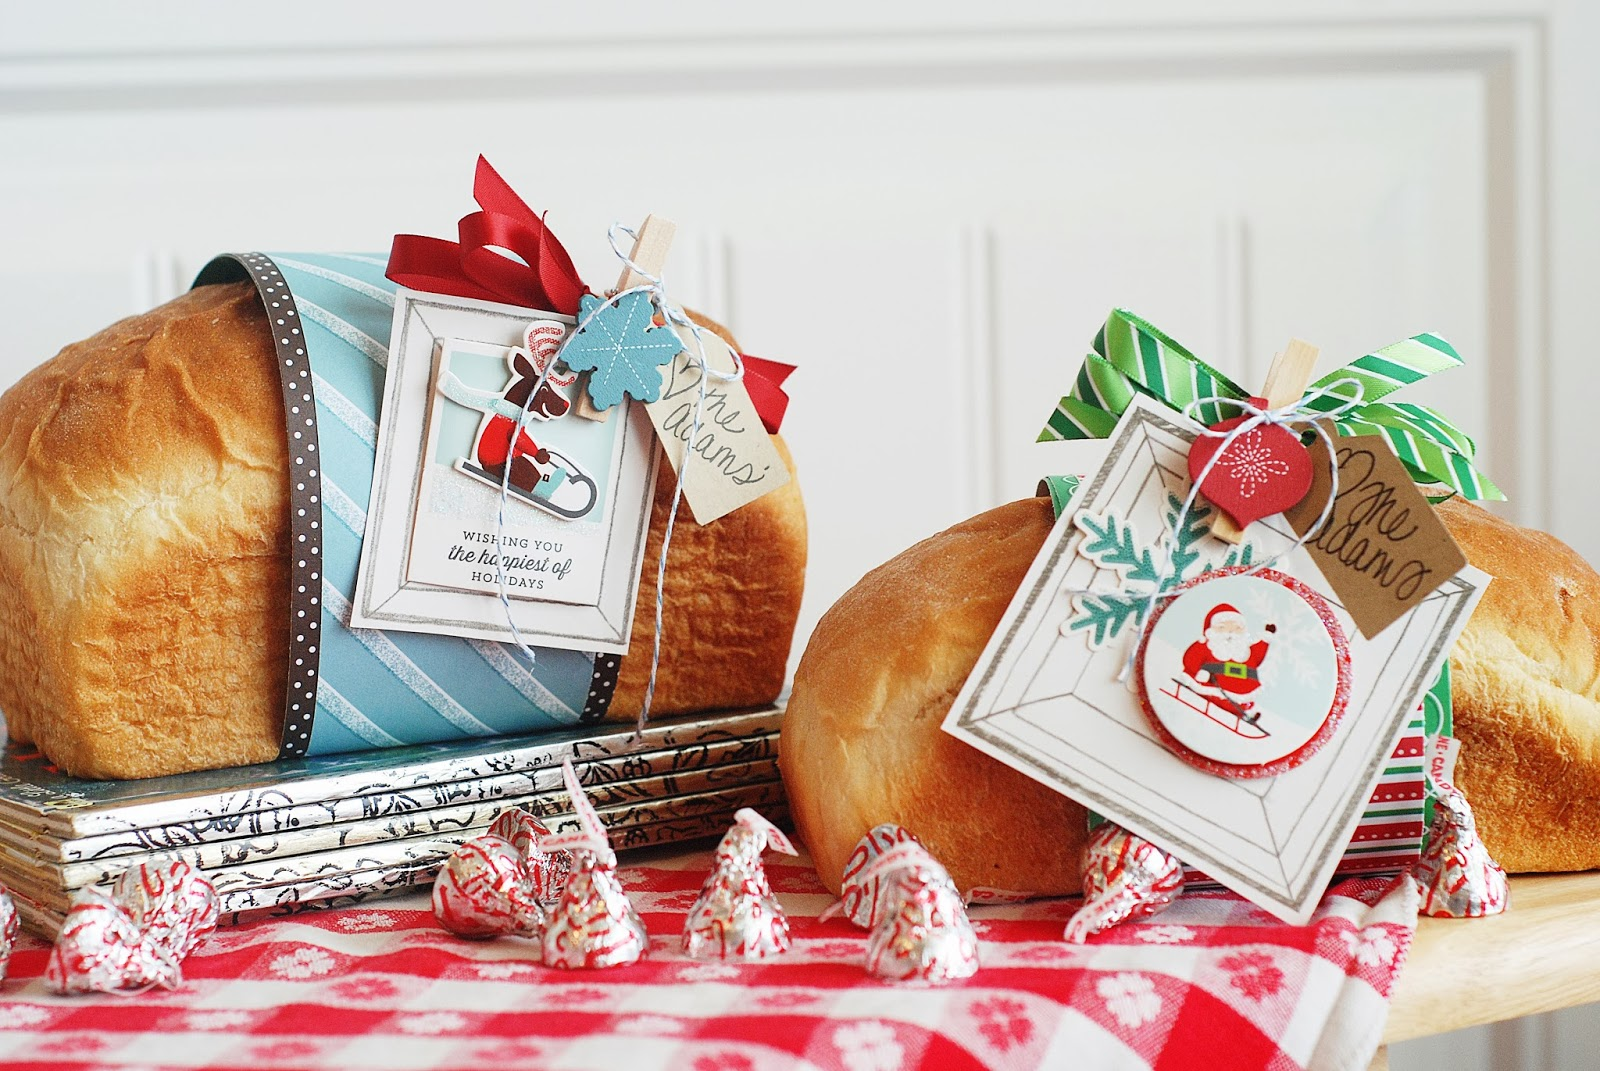 Gift wrapping ideas for home made baked goods - I Hope This Idea Helps You With Any Last Minute Gifts Merry Christmas